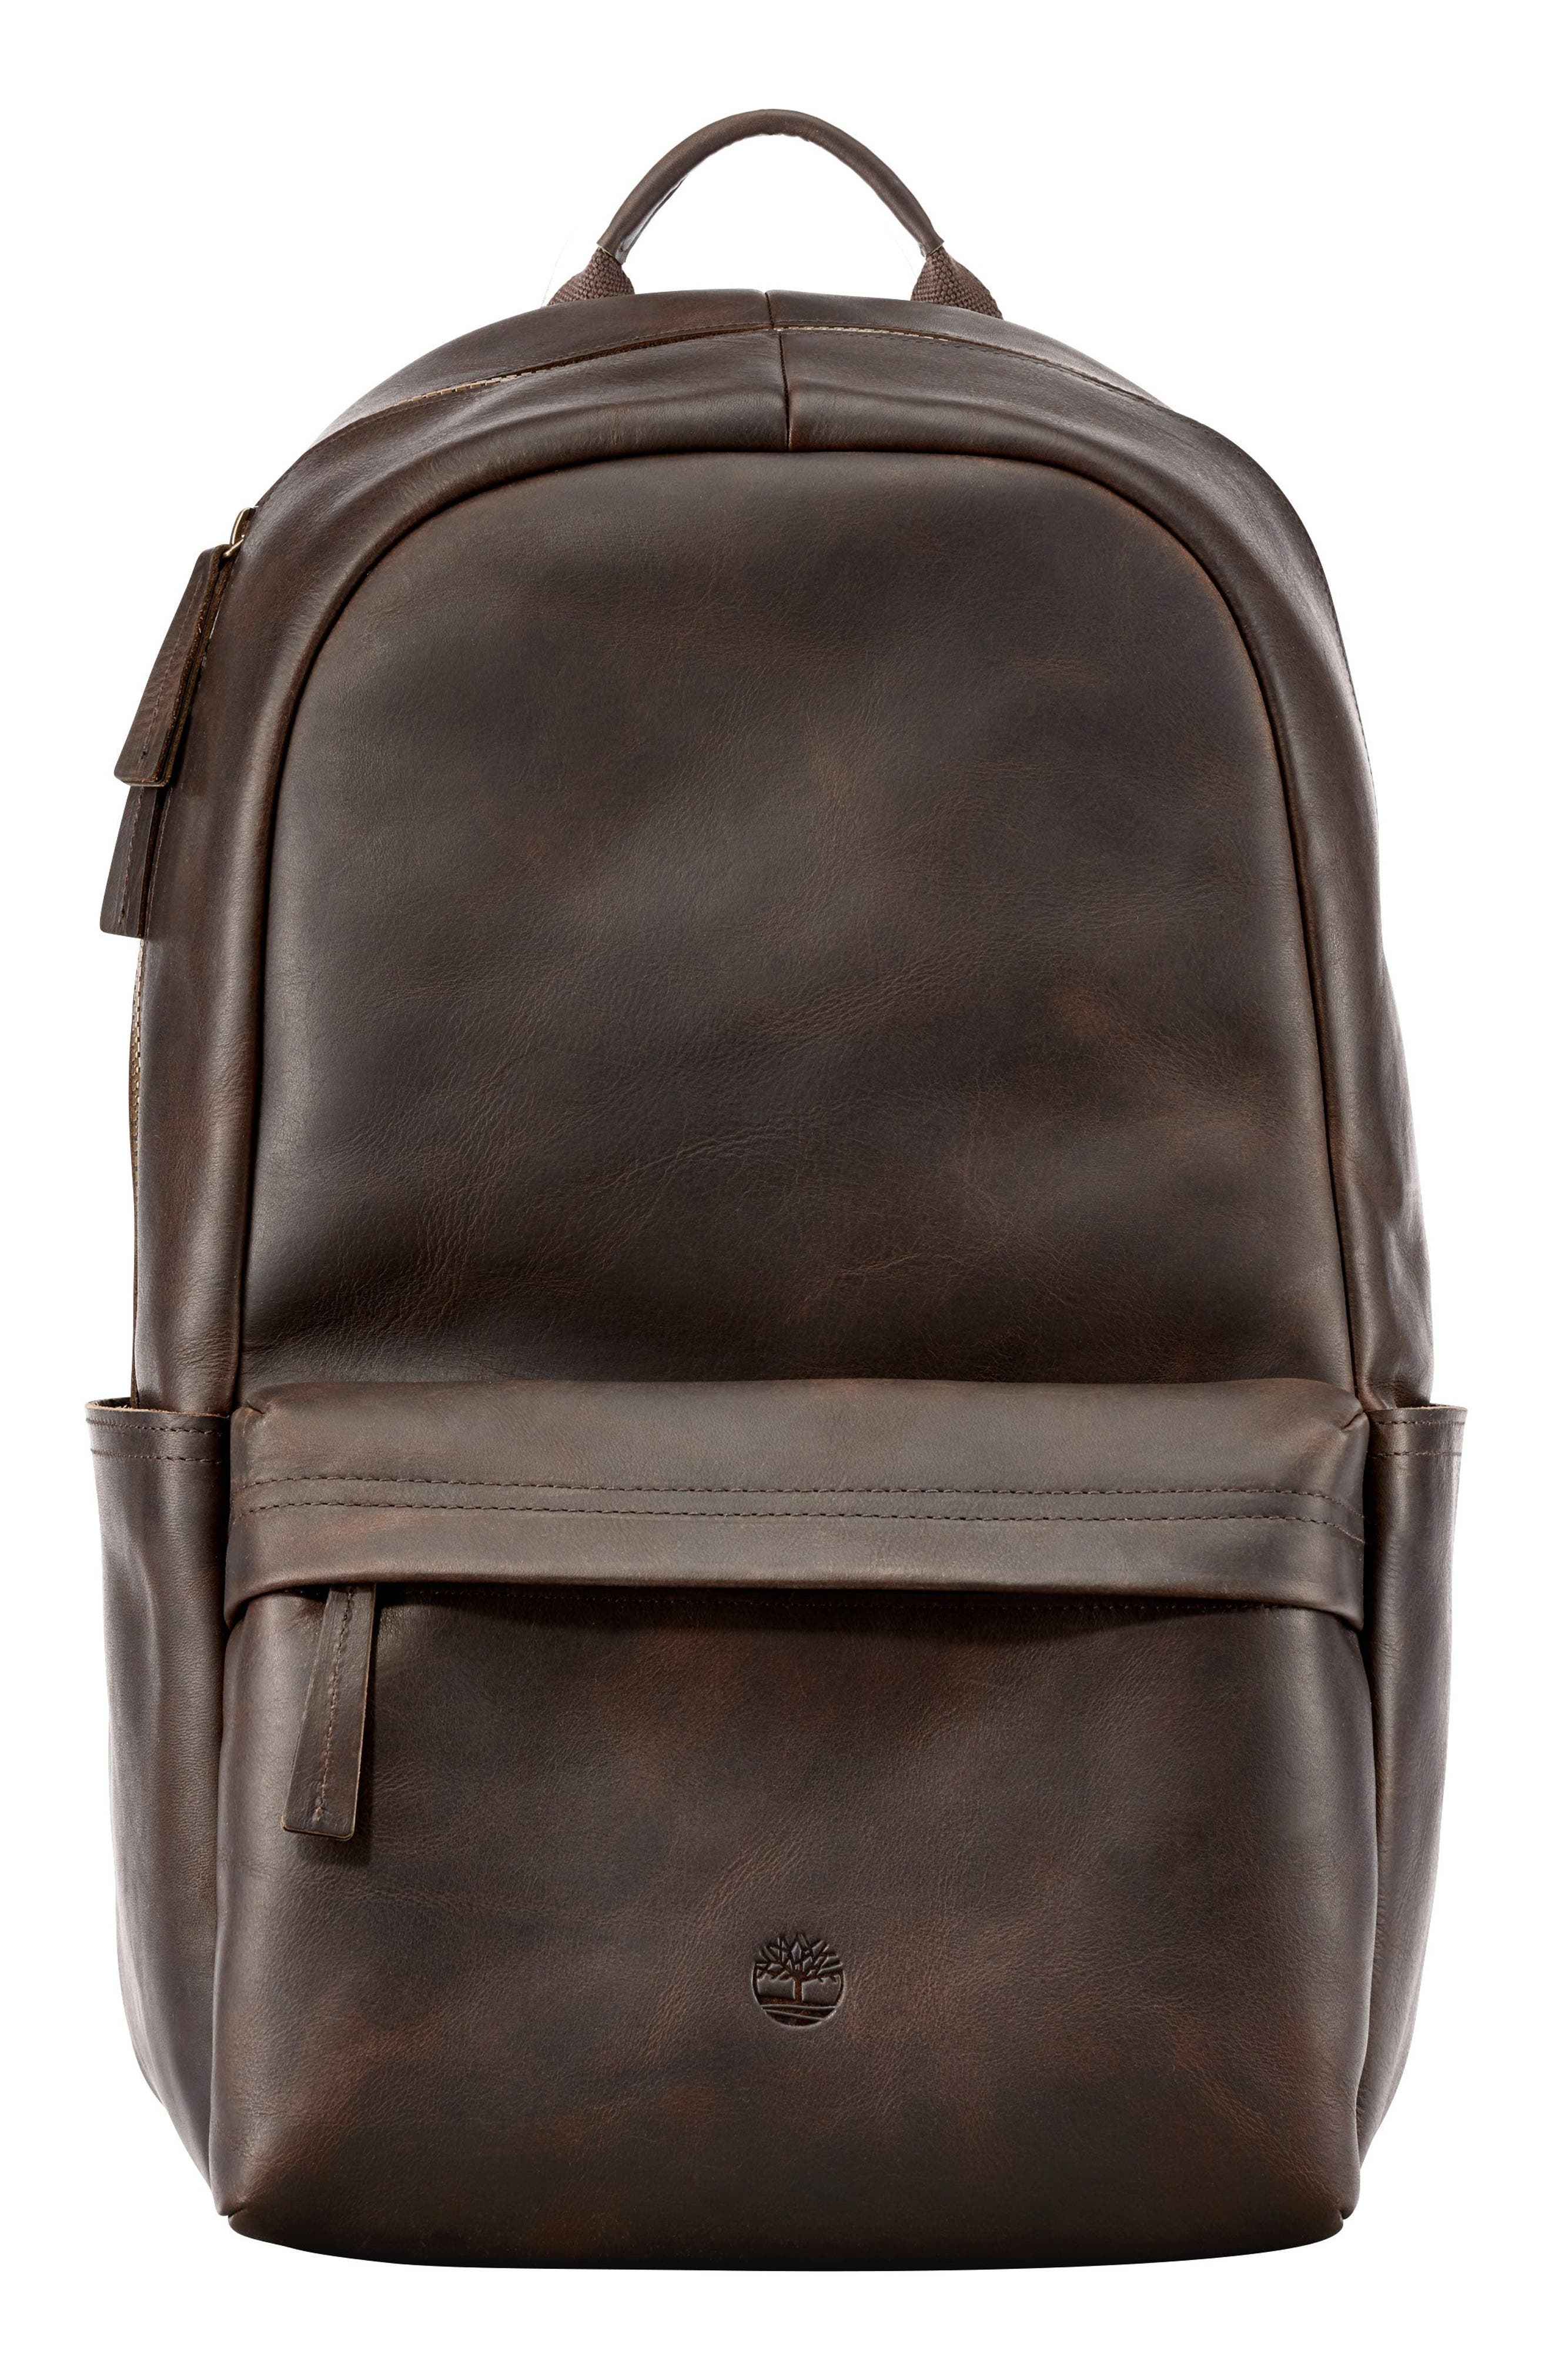 TIMBERLAND Tuckerman Leather Backpack, Main, color, 200